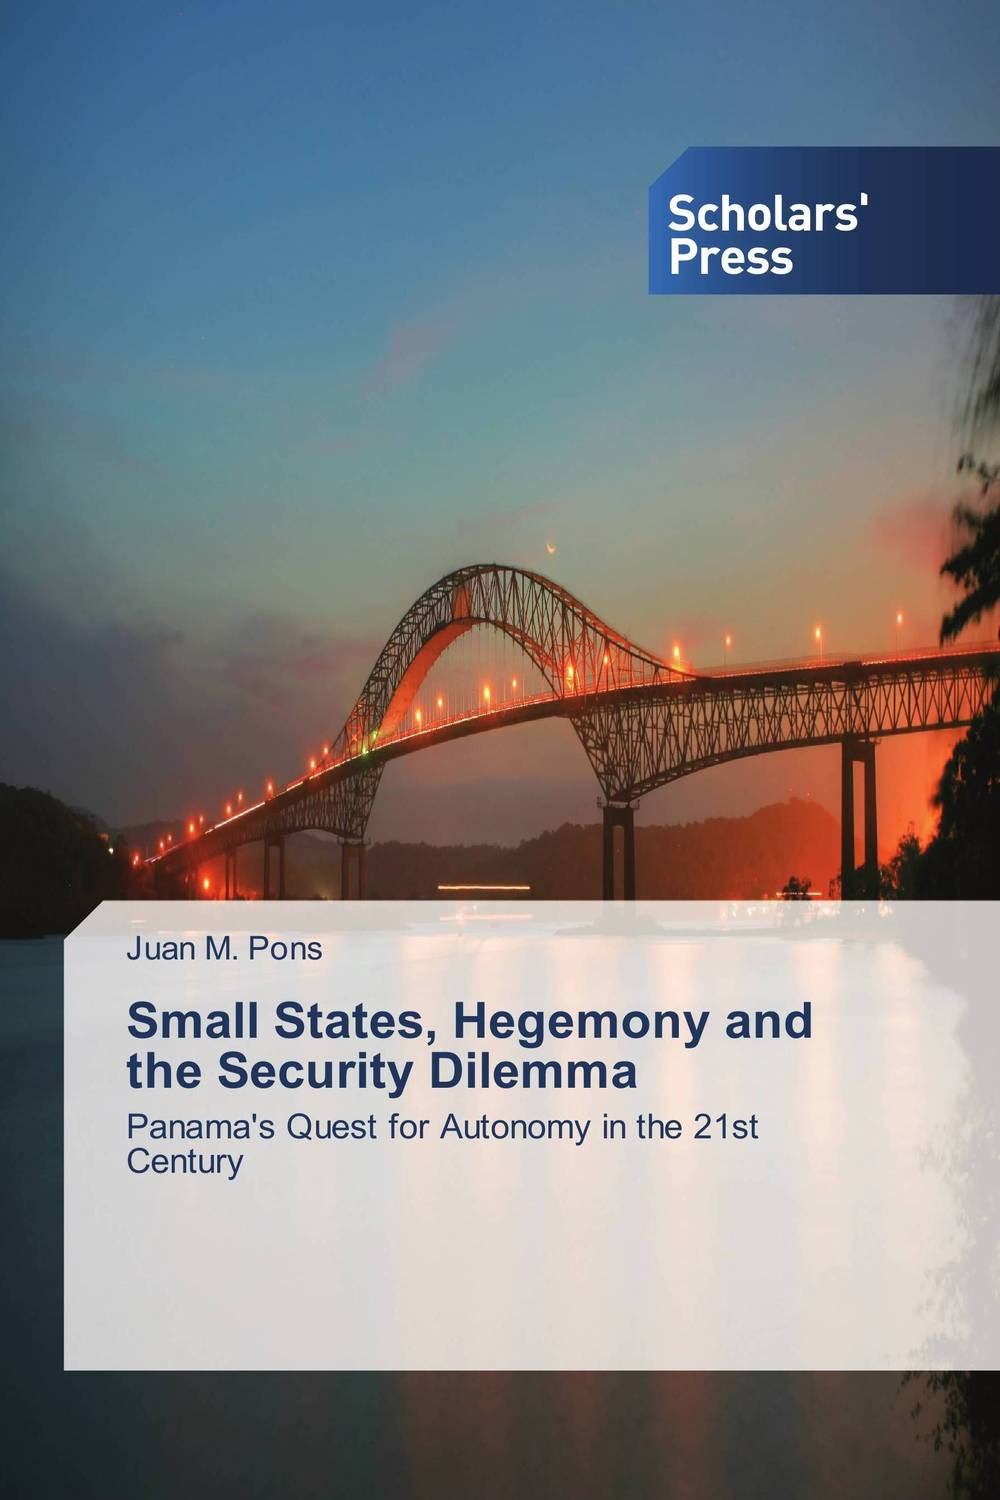 Small States, Hegemony and the Security Dilemma belousov a security features of banknotes and other documents methods of authentication manual денежные билеты бланки ценных бумаг и документов